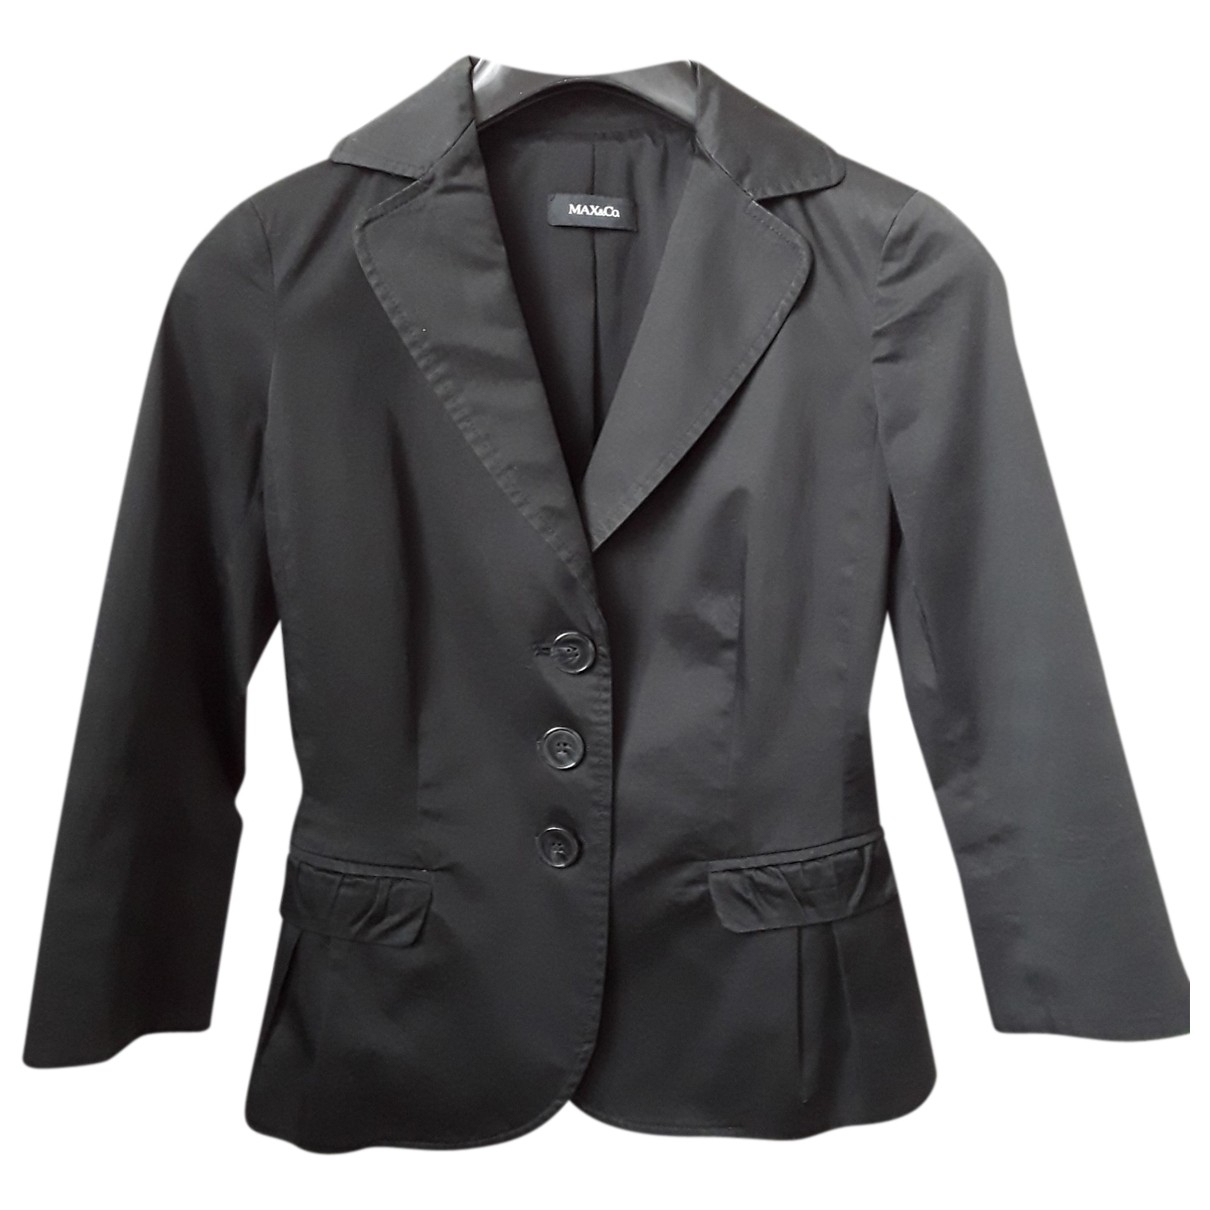 Max & Co \N Black Cotton jacket for Women 34 FR